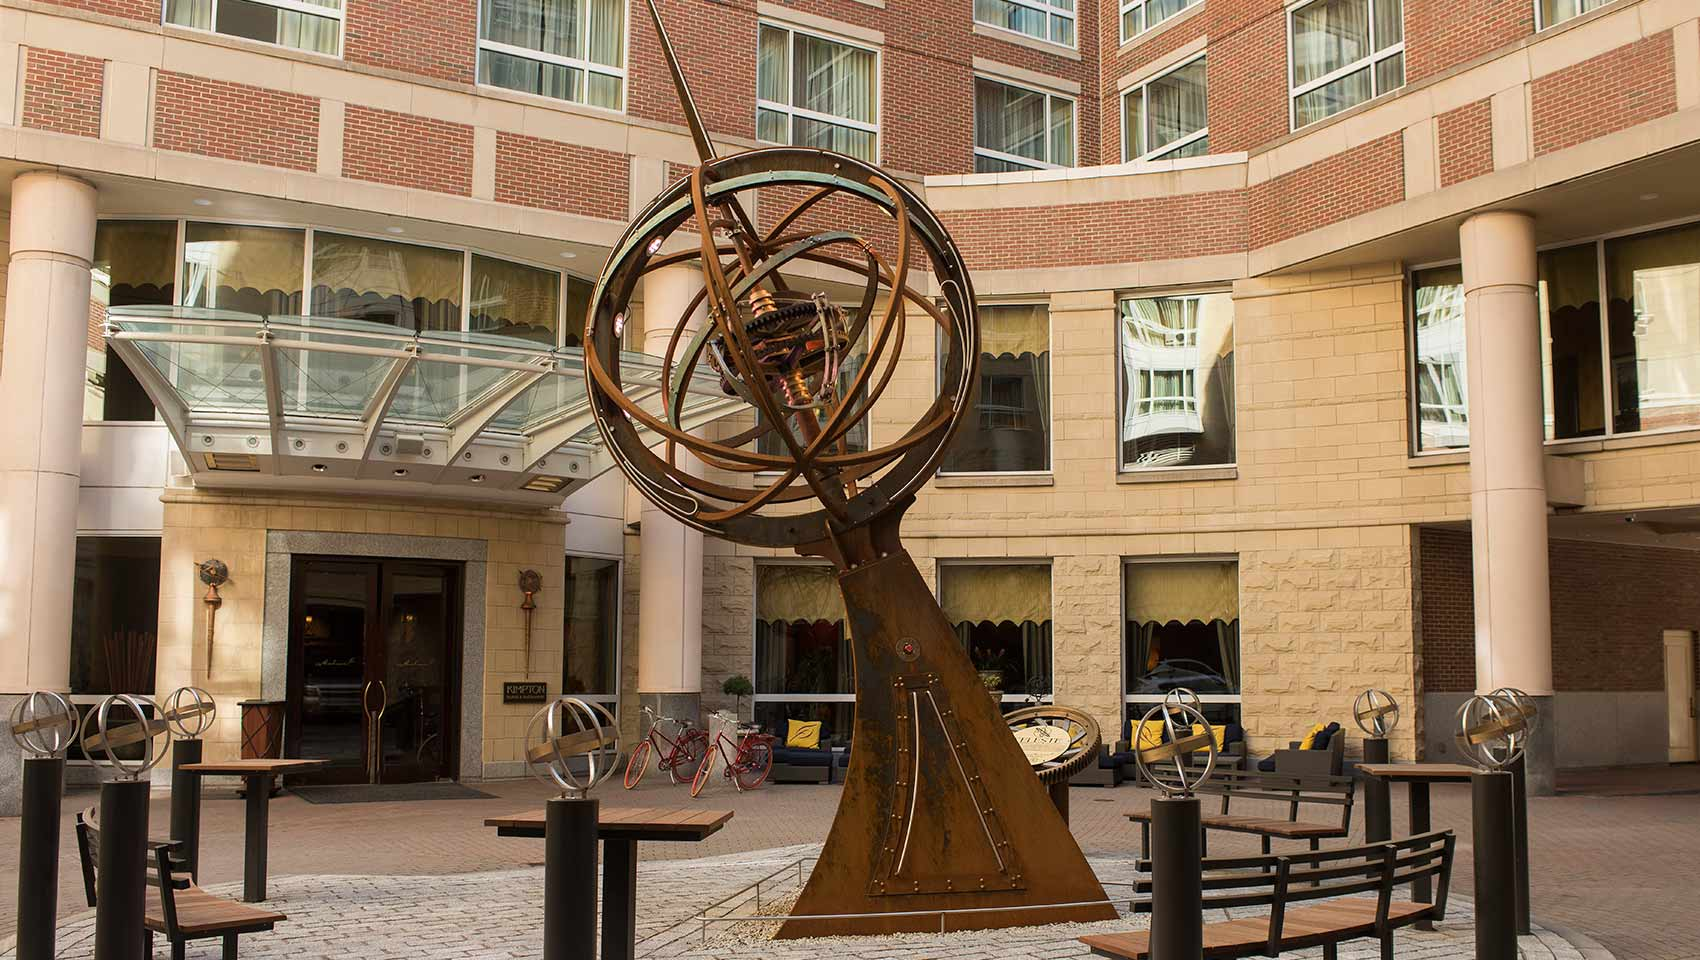 Kimpton Marlowe Hotel courtyard with sphere shaped, metal art fixture, Celeste, in the middle.